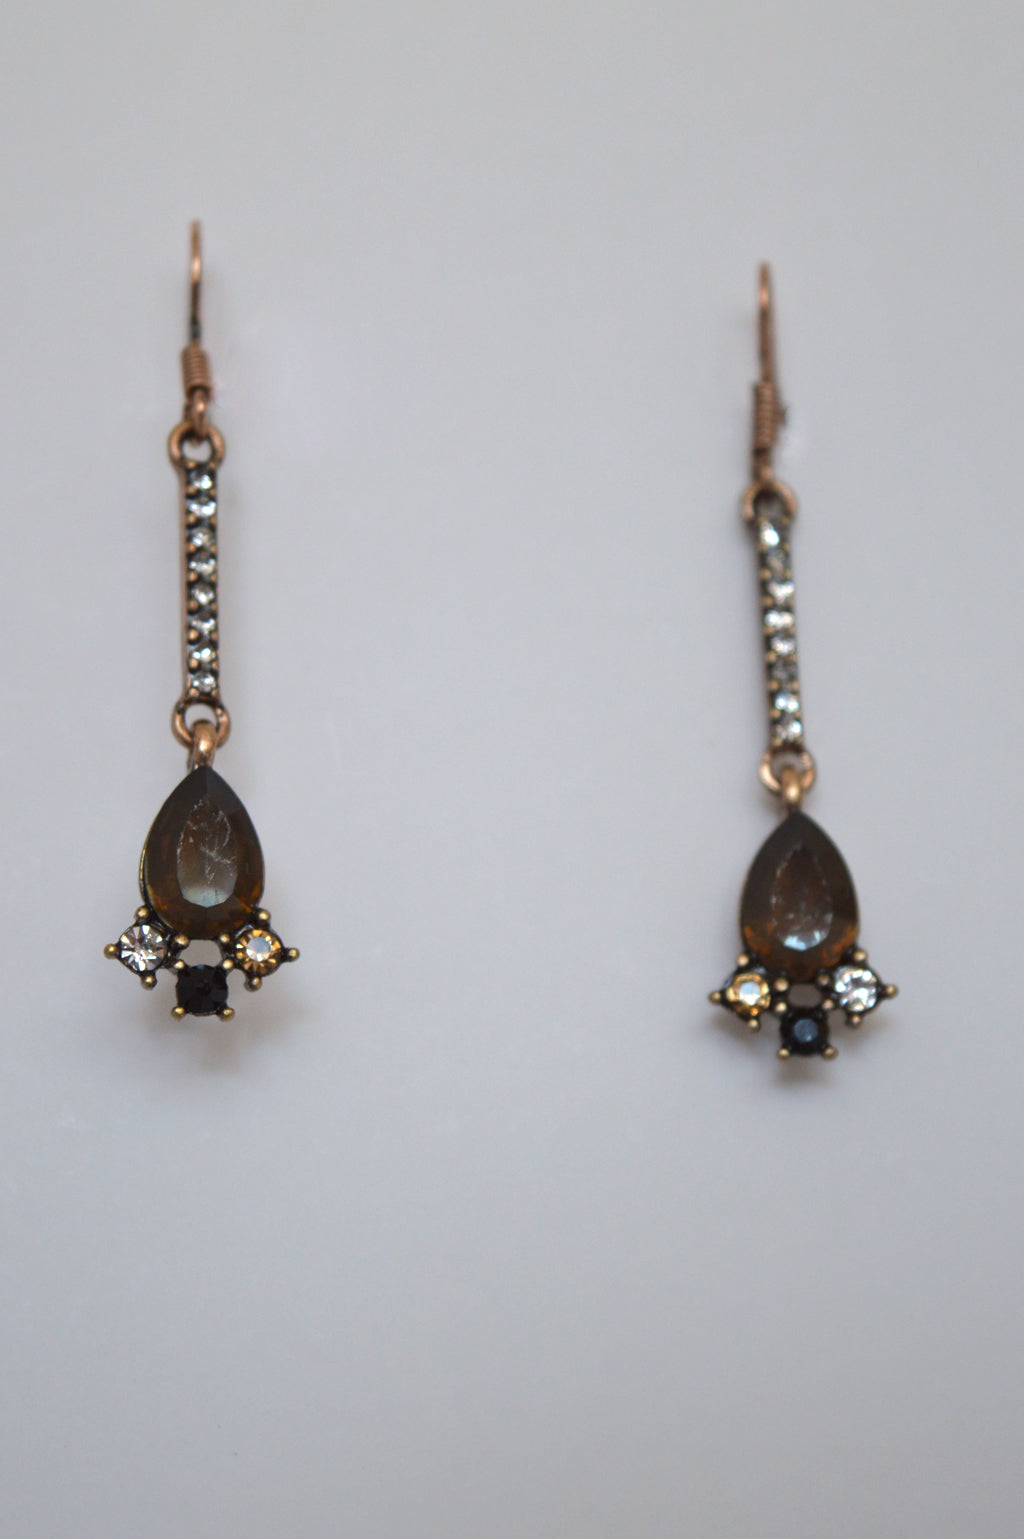 VINTAGE COPPER DROP EARRINGS